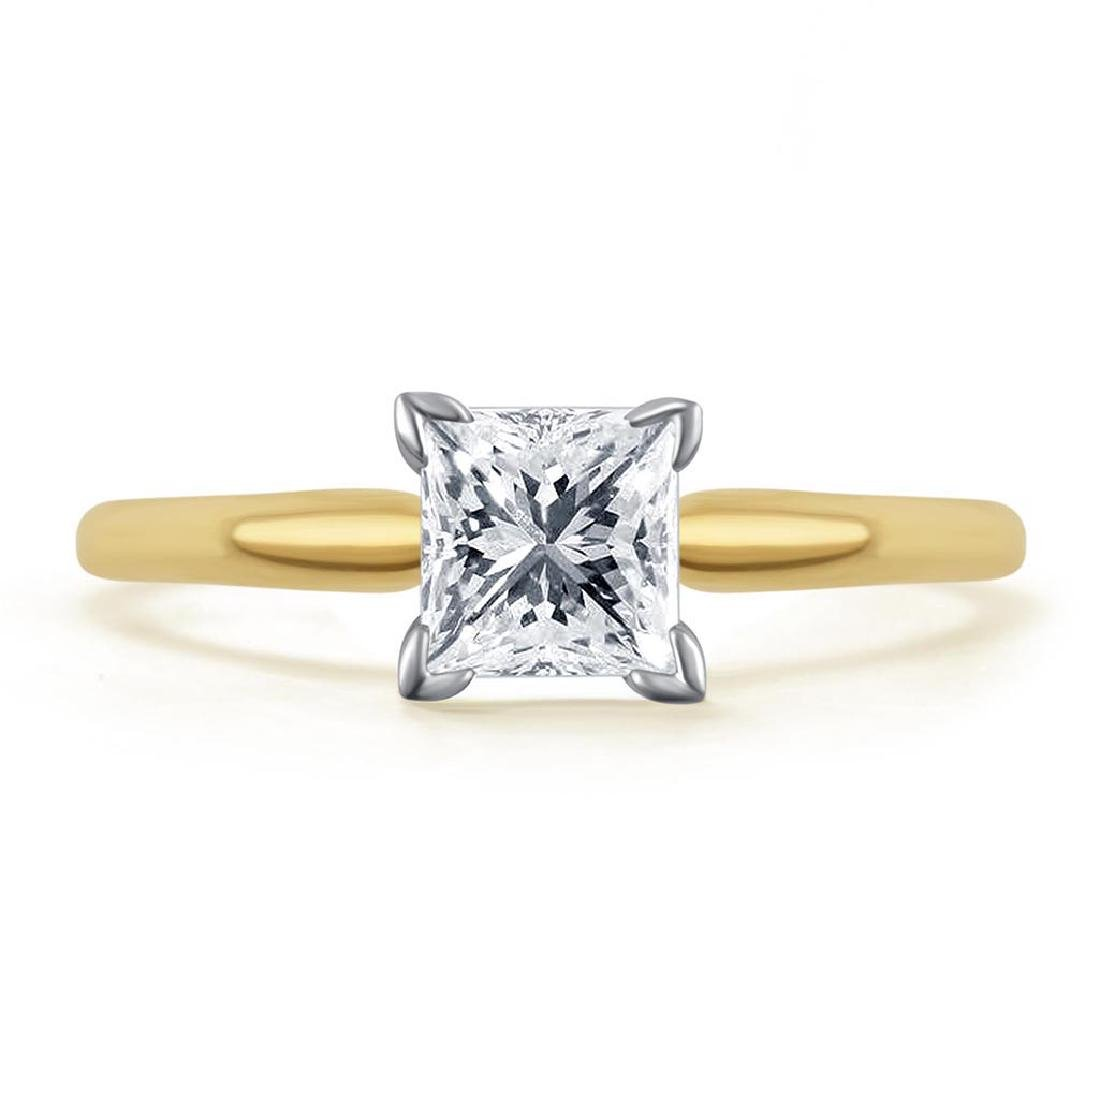 CERTIFIED 0.58 CTW PRINCESS G/SI1 SOLITAIRE RING IN 14K